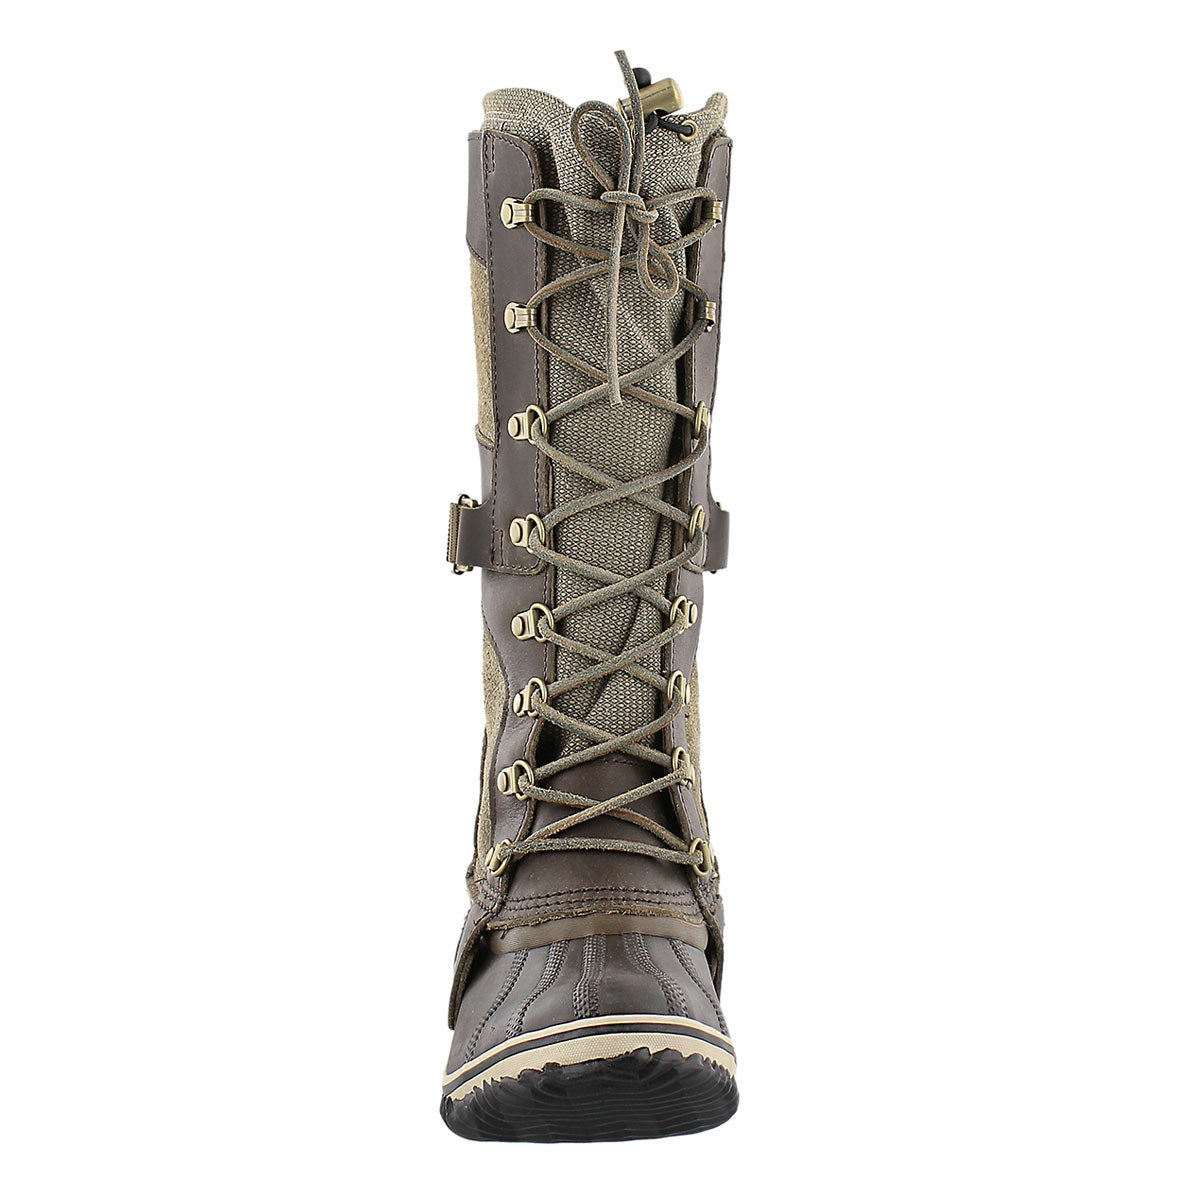 Lds ConquestCarly camo brn knee hi boot